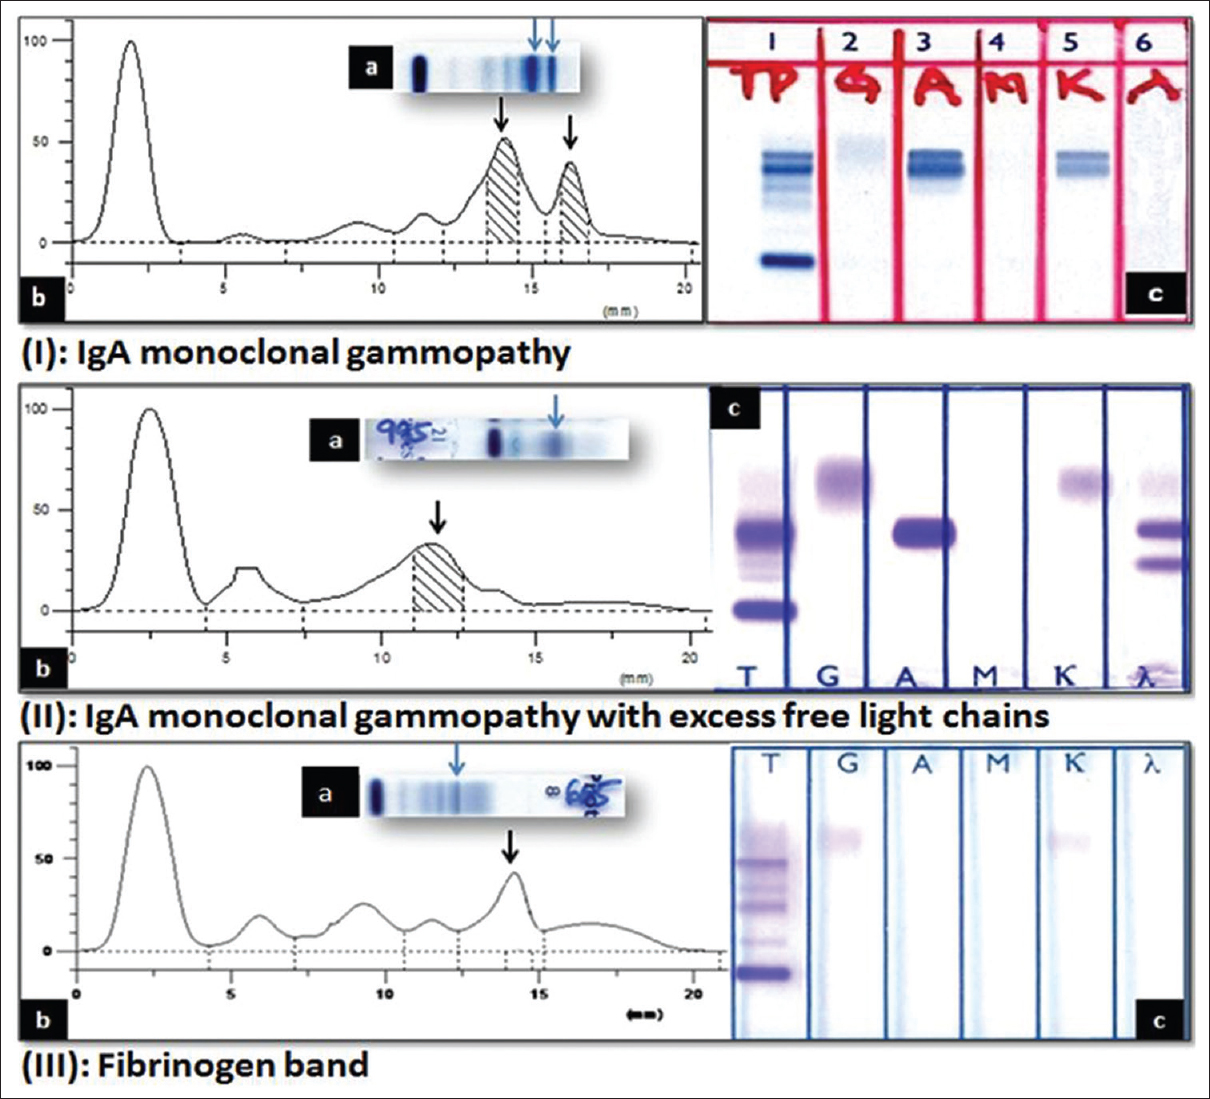 Figure 2: I   (a) Serum Protein Electrophoresis: Two Bands In Gamma Region;  (b) Densitometer Tracing: Two Sharp Peaks In Gamma Region; (c)  Immunofixation ...